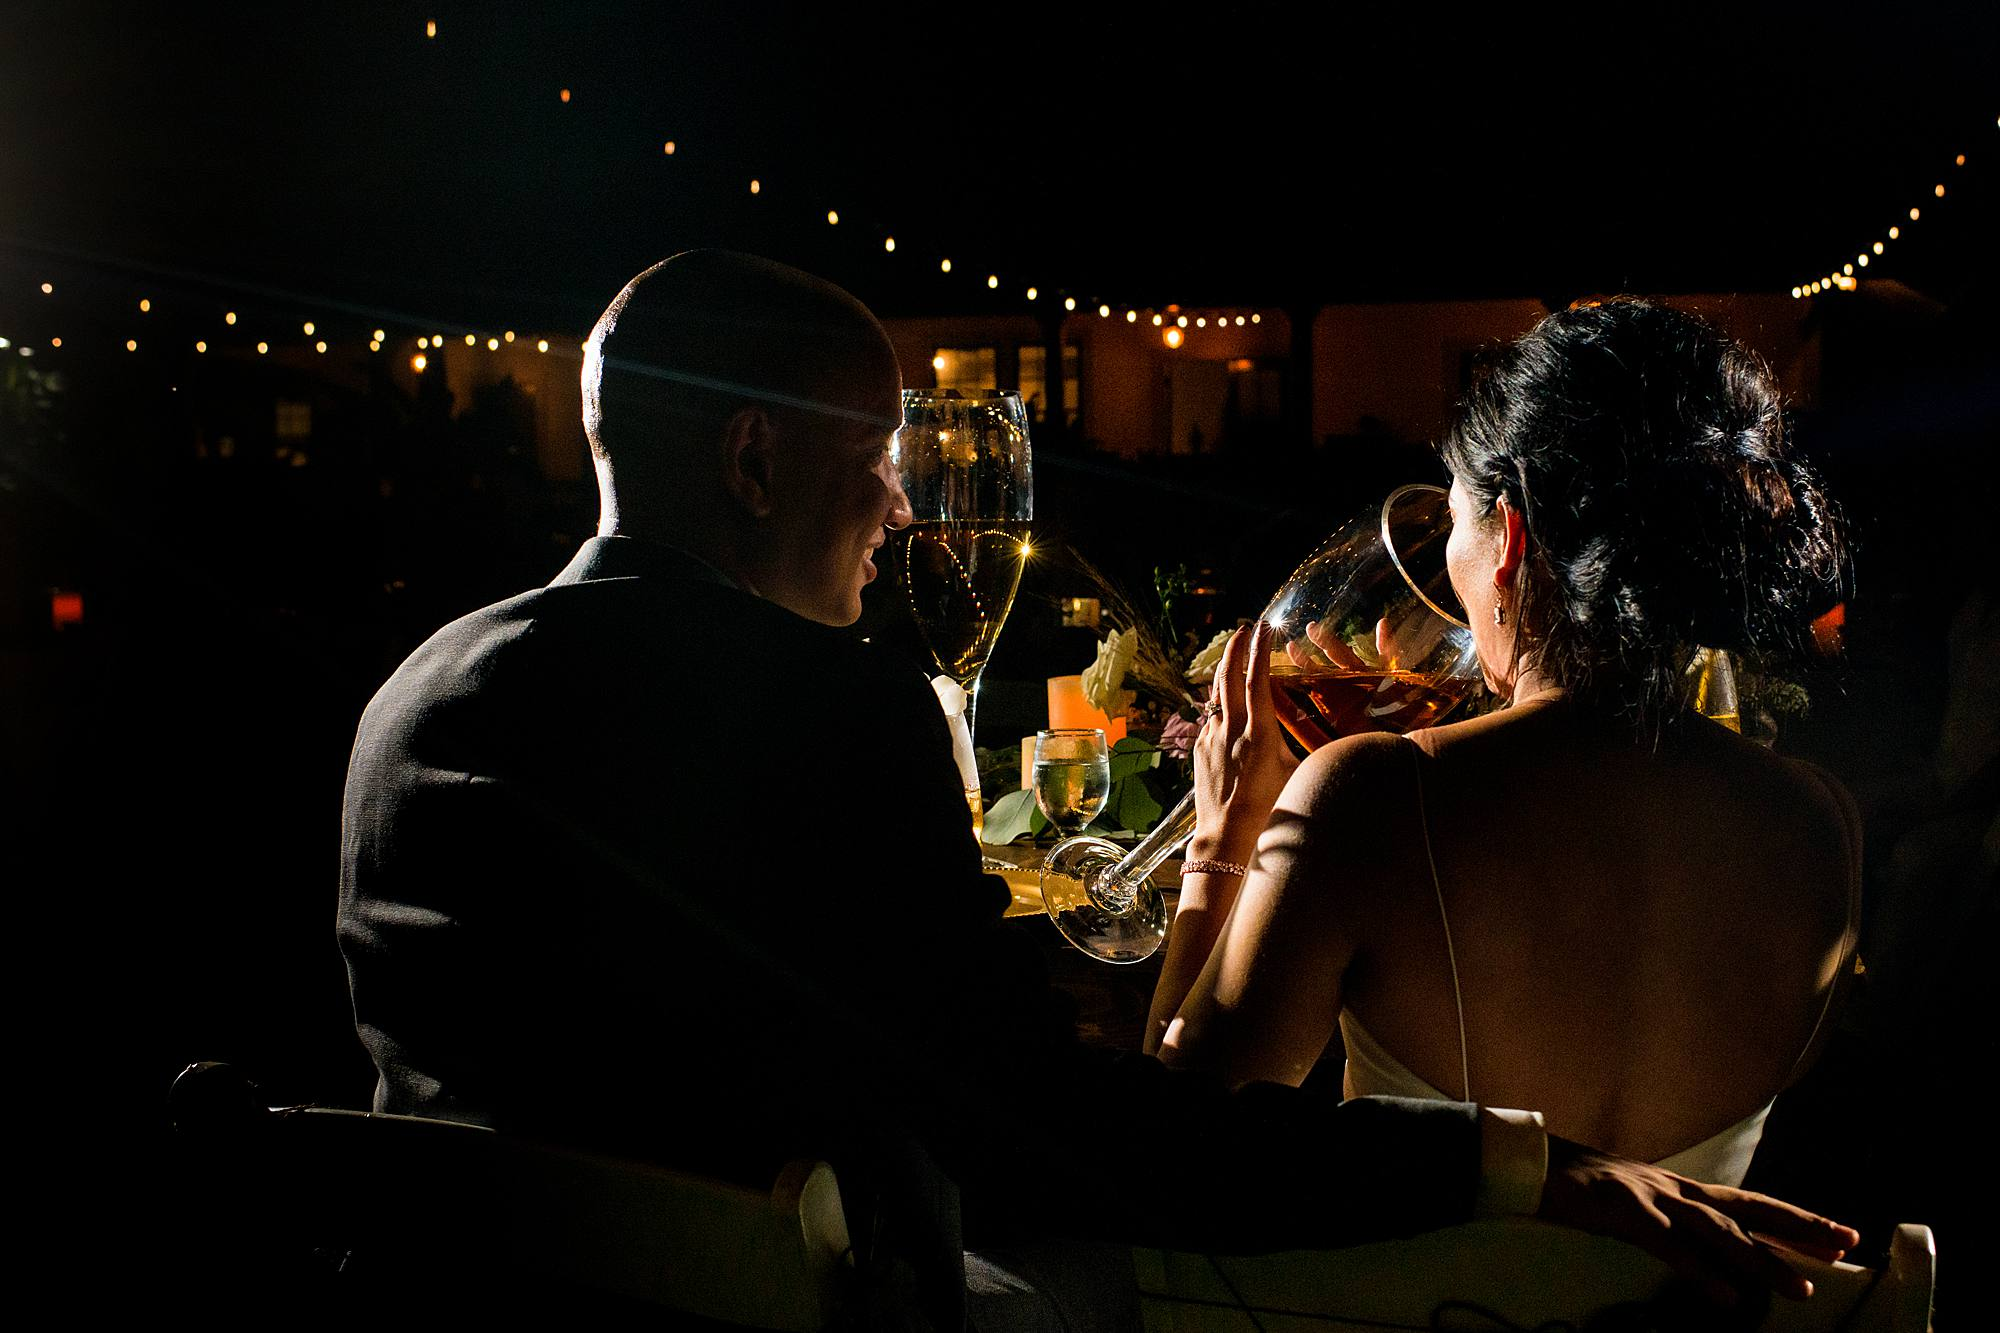 bride and groom drinking from large wine glasses